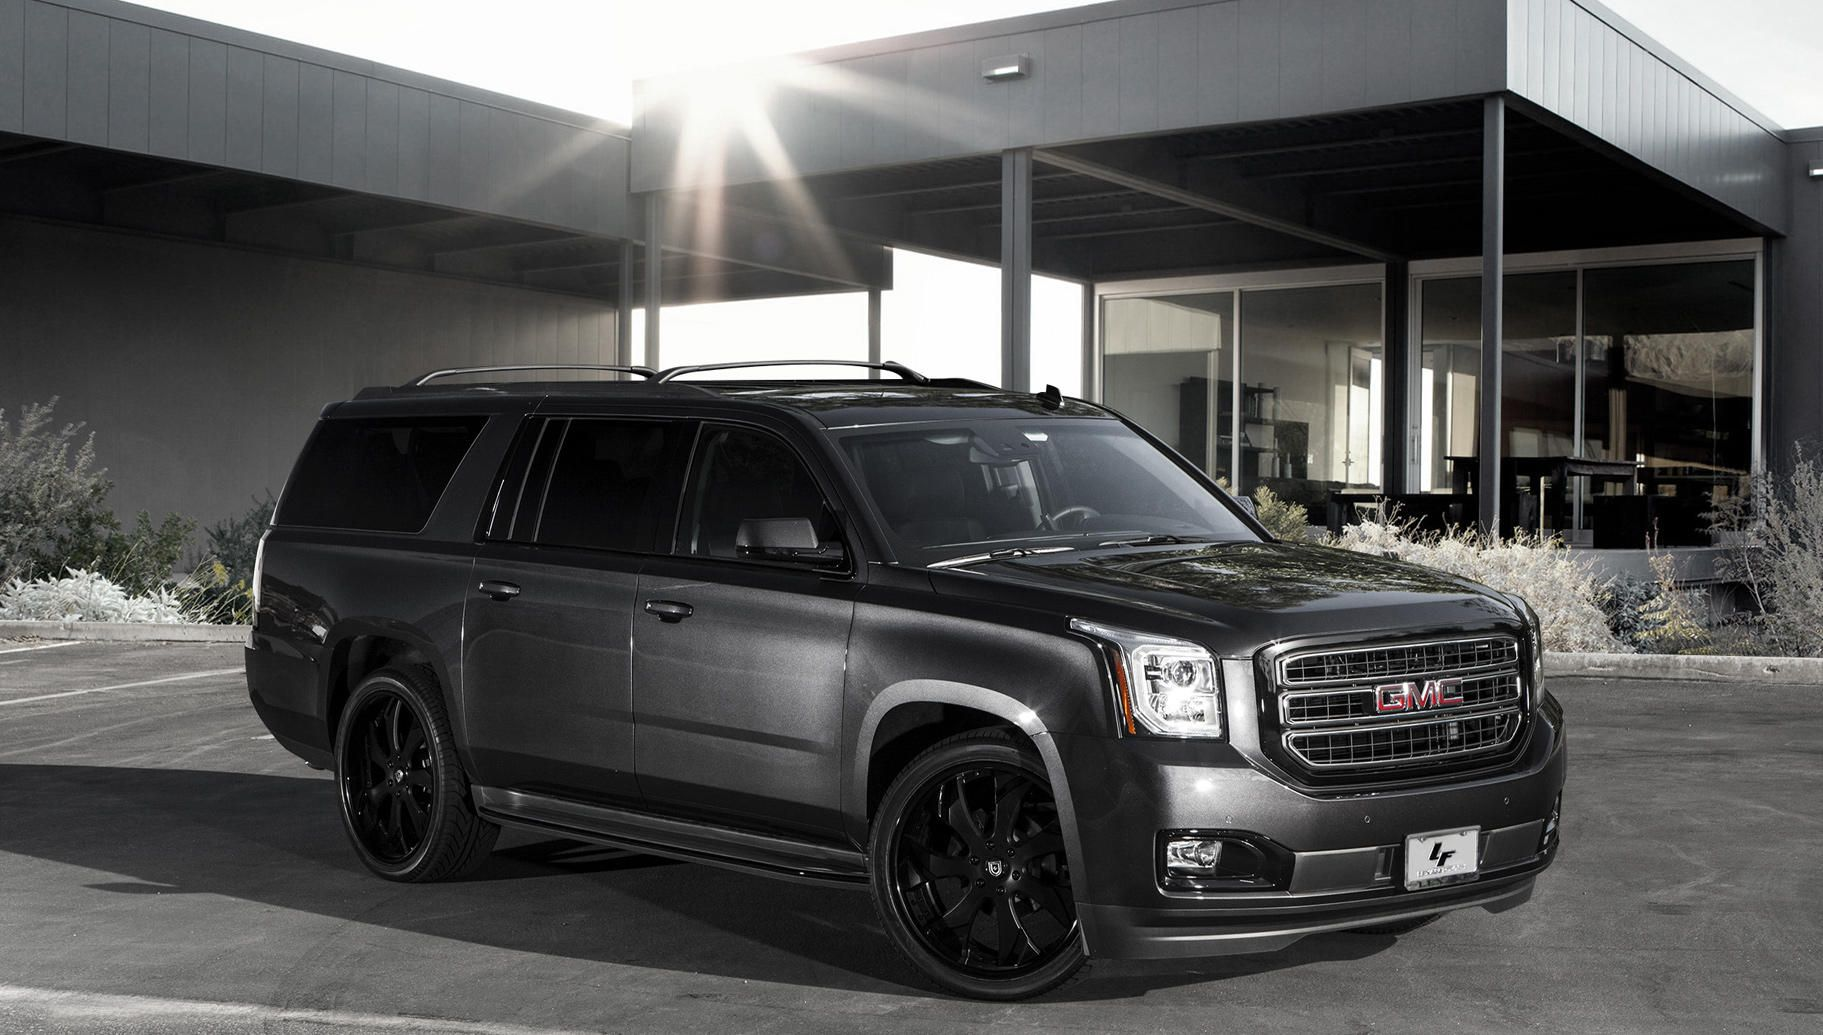 Lexani Wheels The Leader In Custom Luxury Wheels Full Black Lf 721 On The 2015 Gmc Yukon Gmc Yukon Gmc Yukon Denali